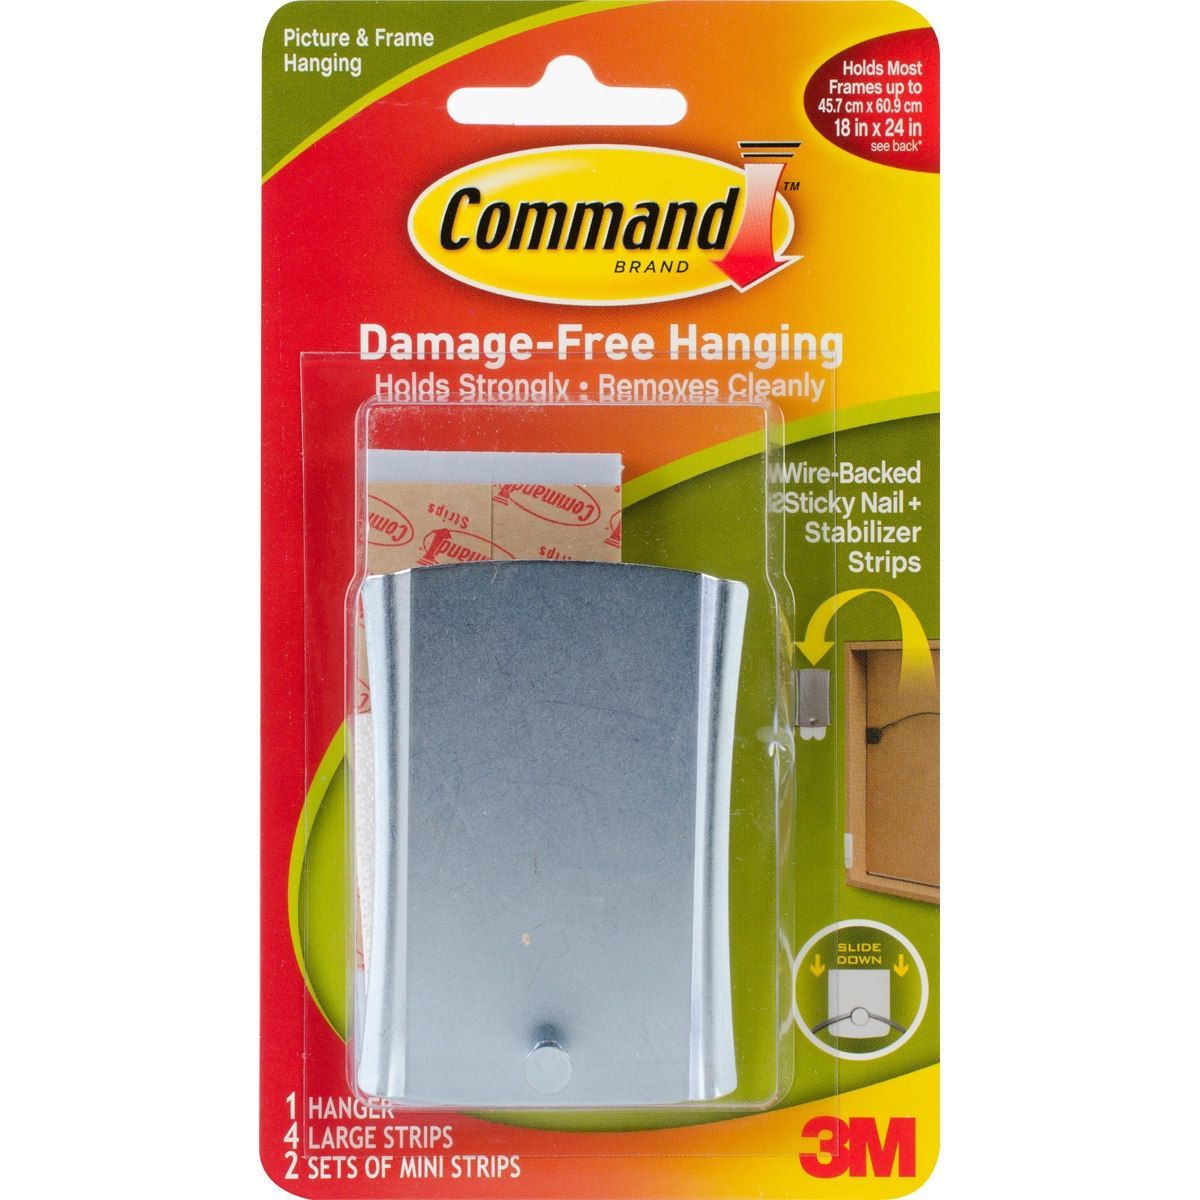 3m Command Wire Backed Sticky Nail 1 Hanger 4 Large Strips 2 1